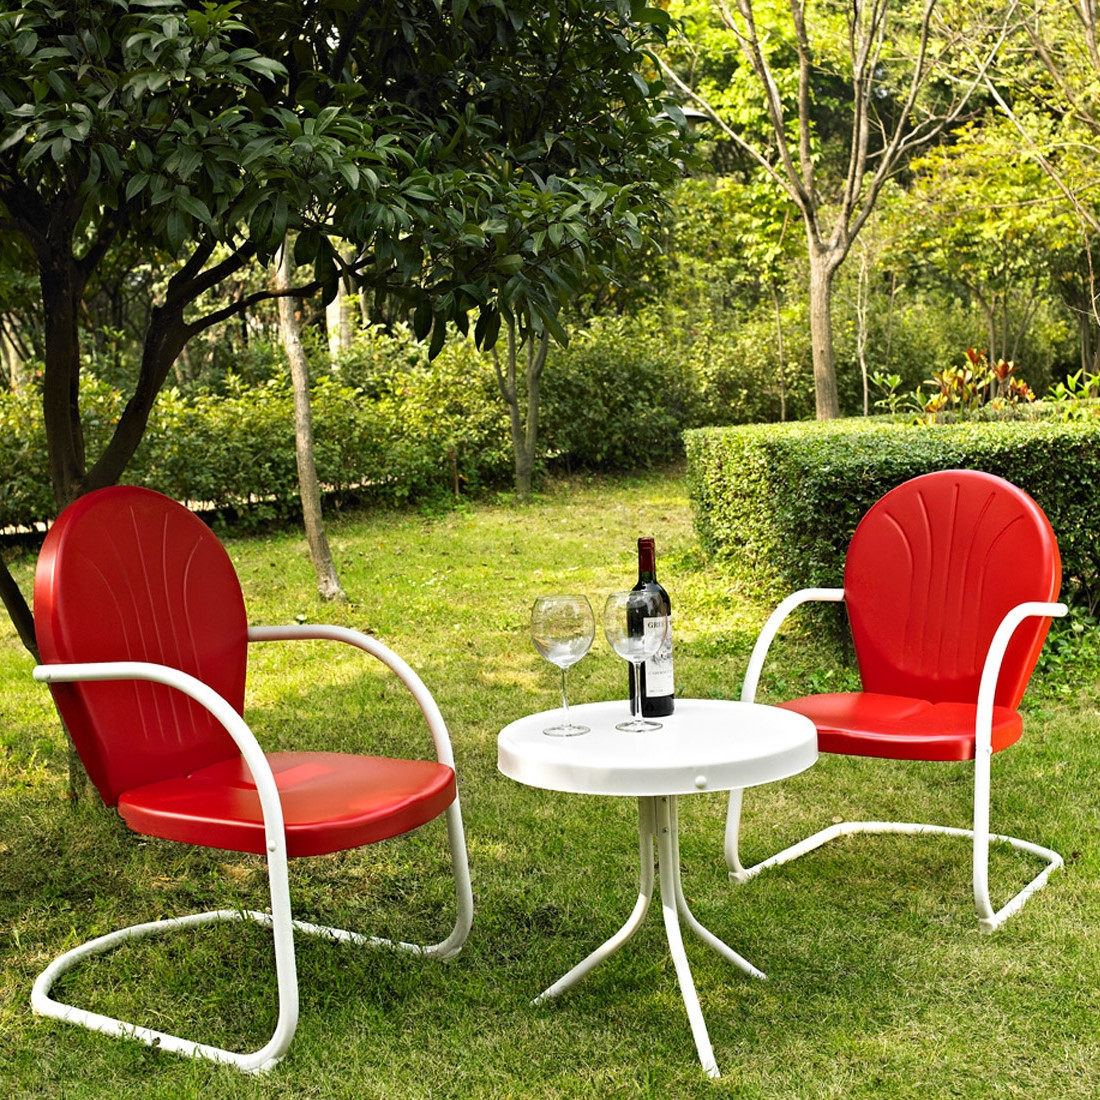 3-Piece Outdoor Patio Furniture Set in Red and White, RSG1389115 : Relax outside for hours on our nostalgically inspired 3-Piece Outdoor Patio Furniture Set in Red and White. Kick back while you reminisce in this seating set, designed to withstand the hottest of summer days and other harsh conditions. Use a soft clean cloth that will not scratch the surface when dusting. Use of furniture polish is not necessary. Should you choose to use a furniture polish, test in an inconspicuous area first. Use of solvents of any kind could damage your furniture's finish. To clean, simply use a soft cloth moistened with lukewarm water, then buff with a dry soft clean cloth. UV resistant; Set includes 1 side table and 2 chairs; Sturdy steel construction; Non toxic powder coated finish; Weather Resistant Details: Weather resistant Water; Resistant Details: Water resistant and waterproof; Assembly Required: Yes; Product Warranty: 3 Month limited; Woven: Yes; Sling Included: No. Weight Capacity: 250lbs. Style: Contemporary; Pieces Included: 1 Side table, 2 Chairs; Country of Manufacture: China.